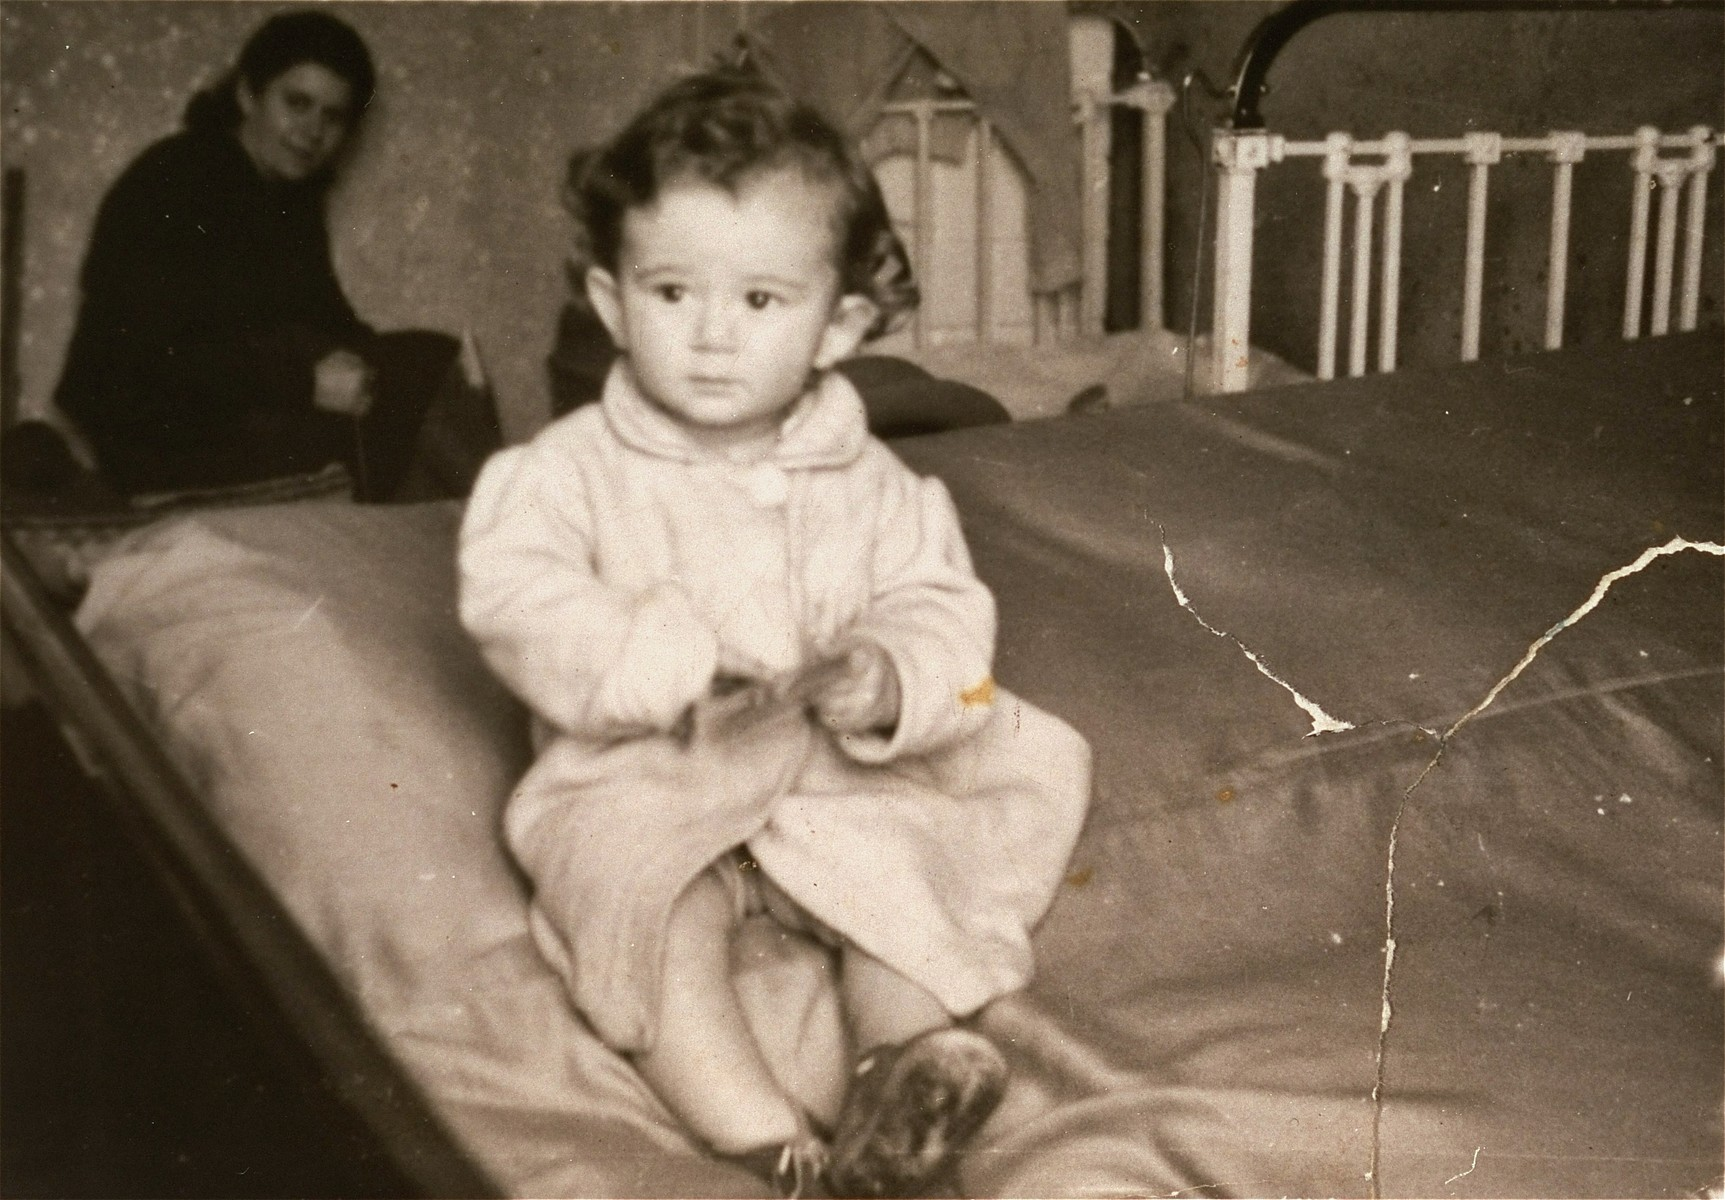 One-year-old Jurek Kaiser sits on a bed in his parents' apartment in the Kielce ghetto.